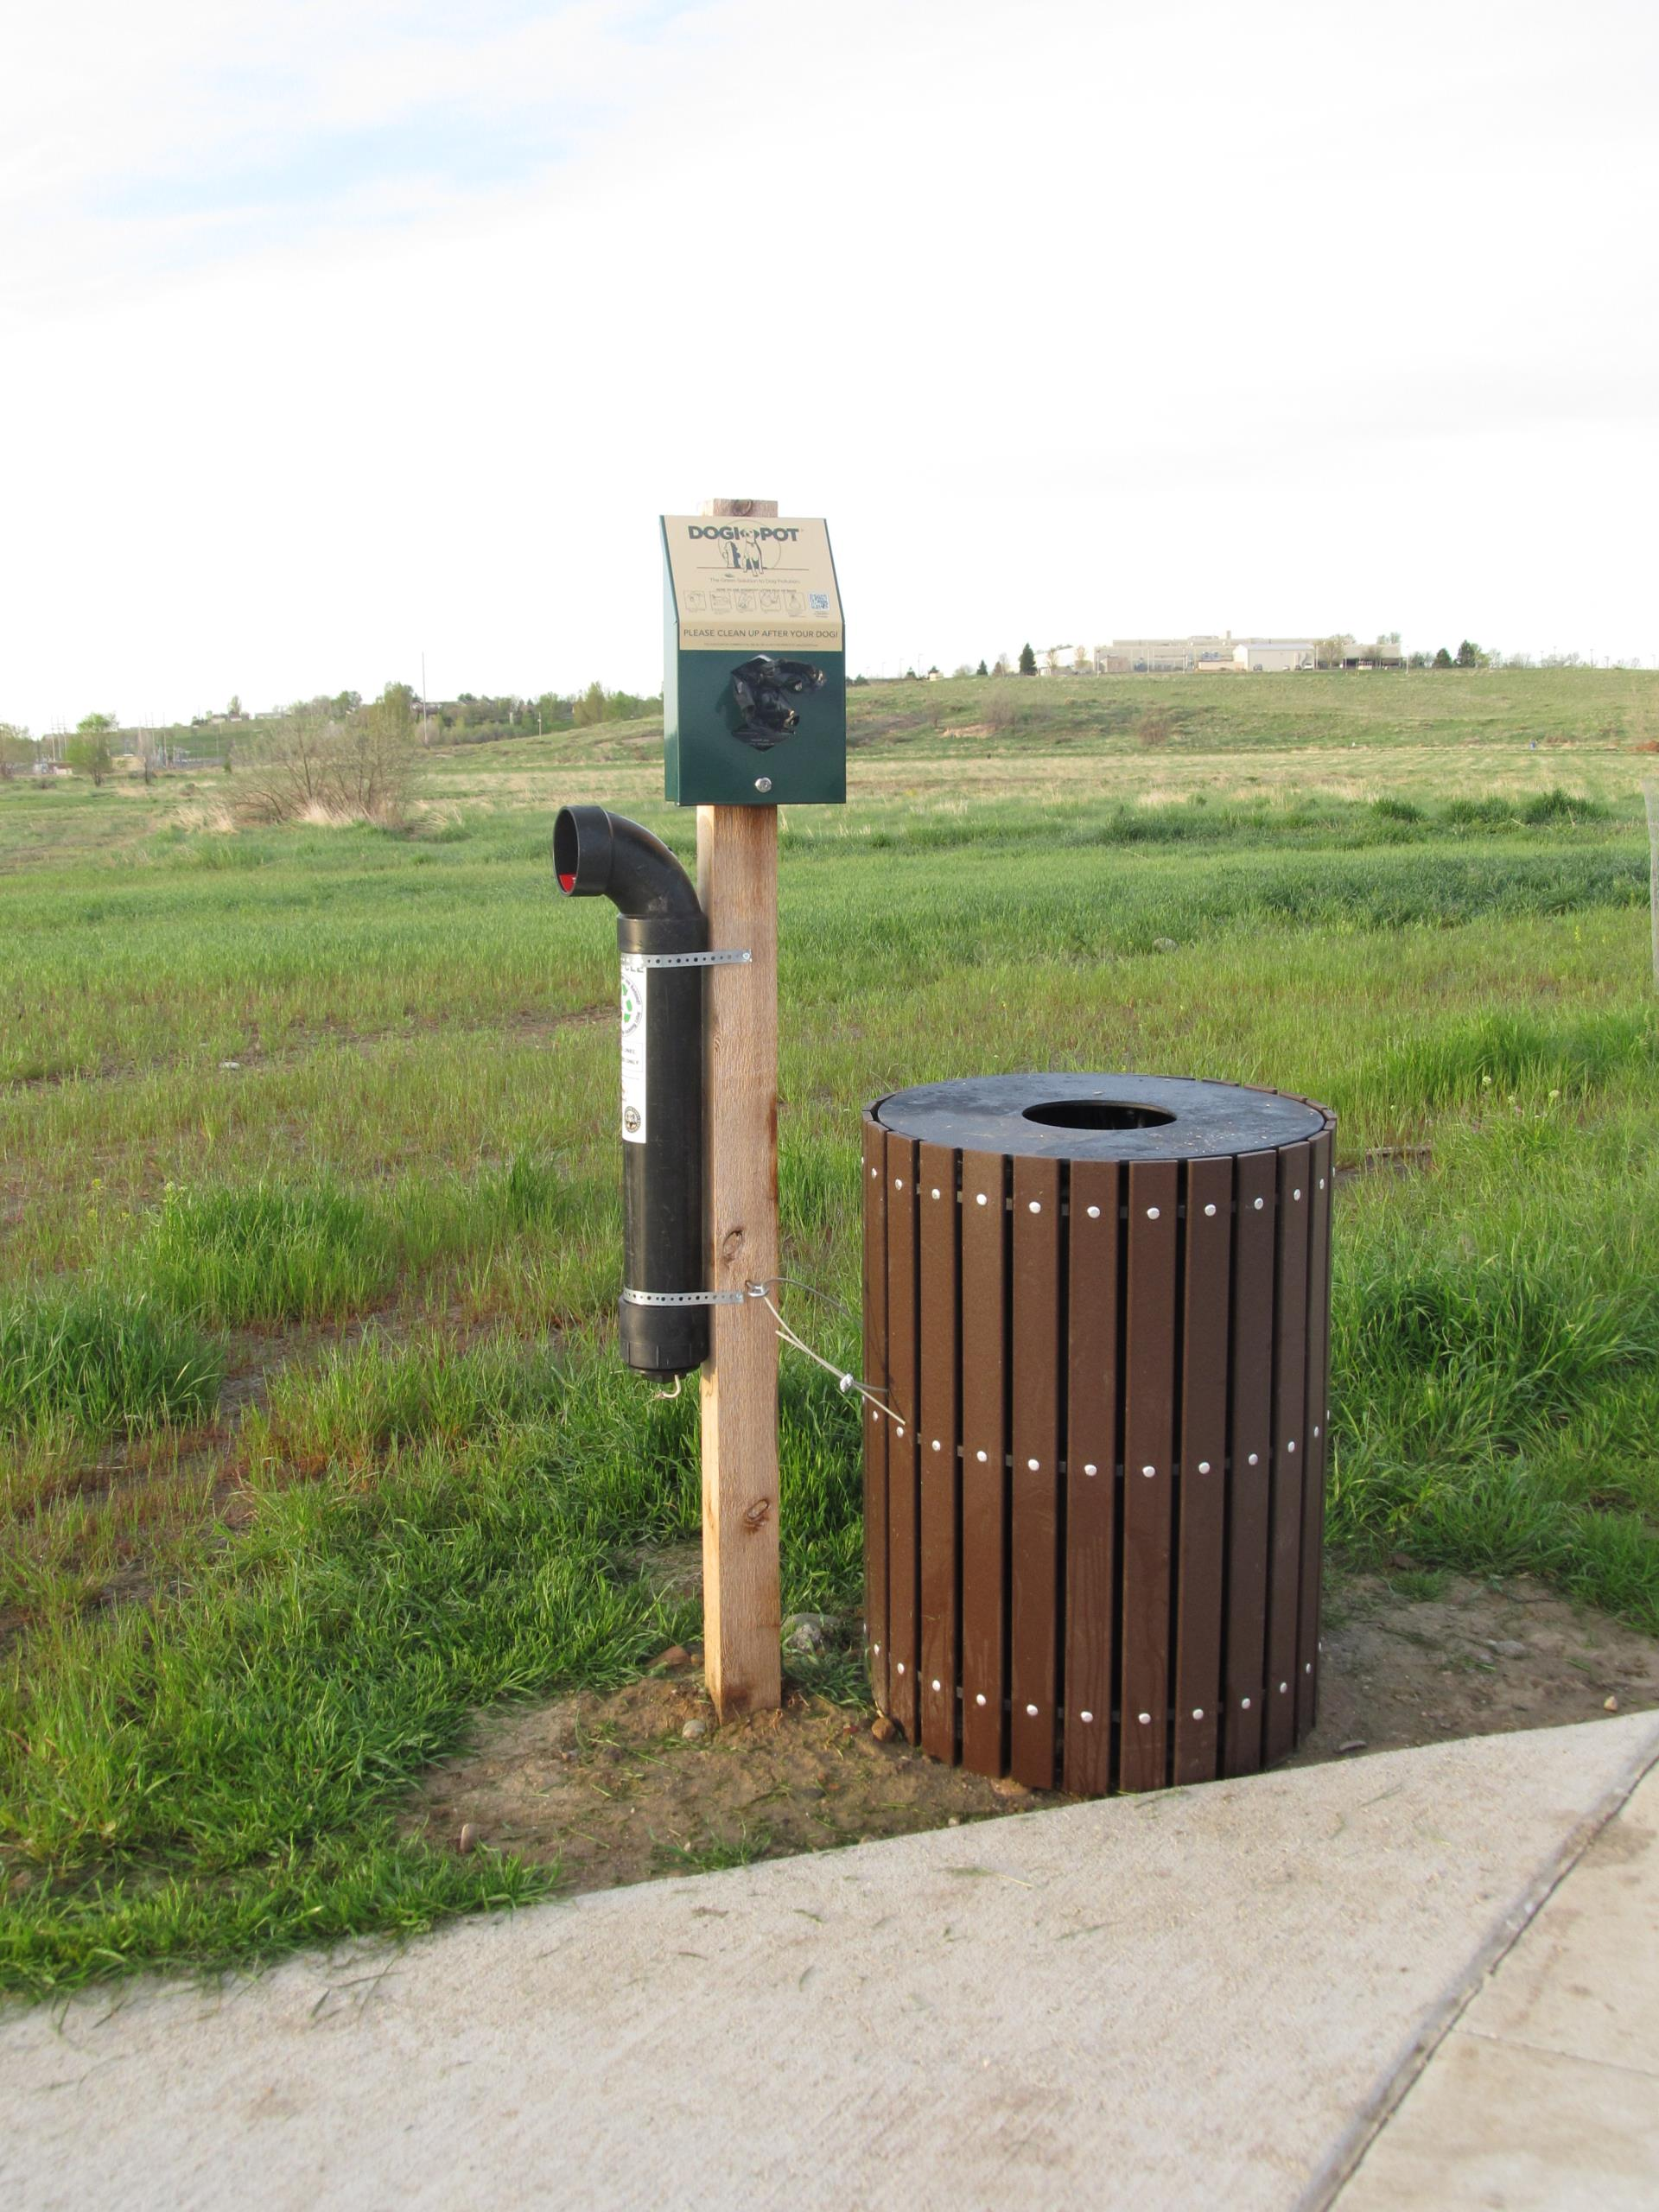 recycling tube for fishing line in Loveland